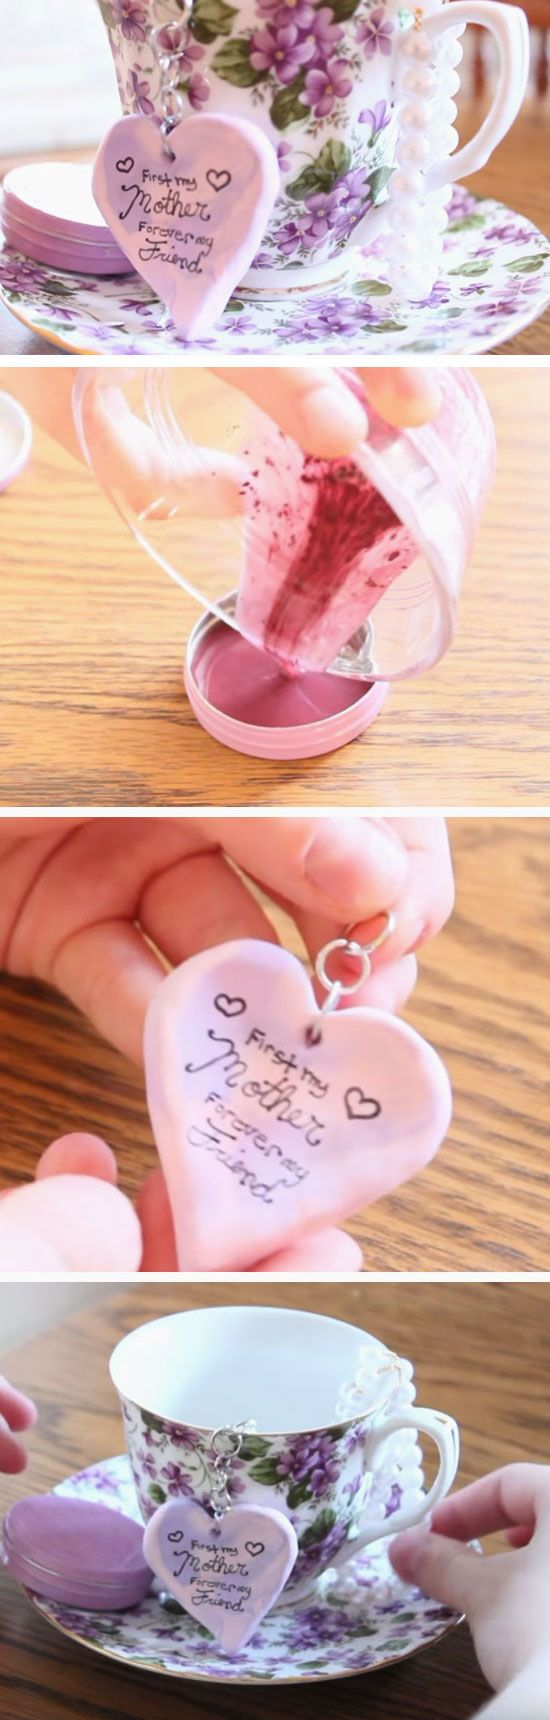 25 unique birthday gifts for grandma ideas on pinterest for Good birthday presents for grandma